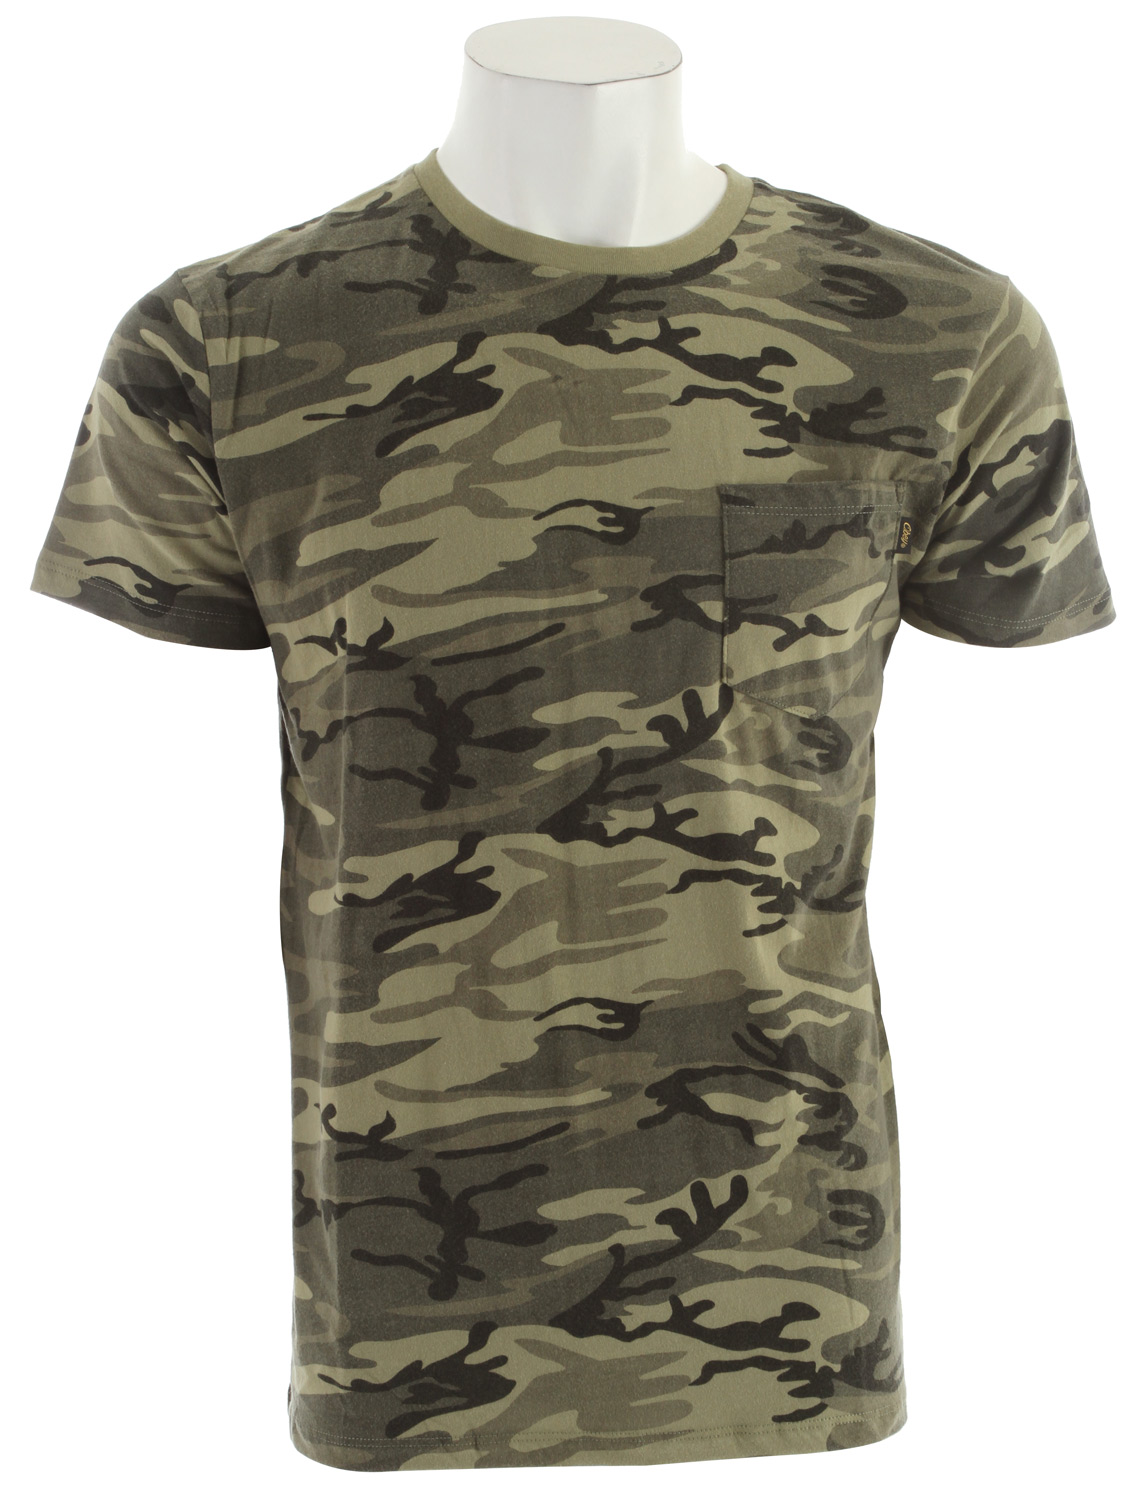 Key Features of the Obey Camo Pocket T-Shirt: Slim fit, lightweight pocket tee with rib crew neck Old Timey flag label at chest pocket 100% Cotton - $27.95